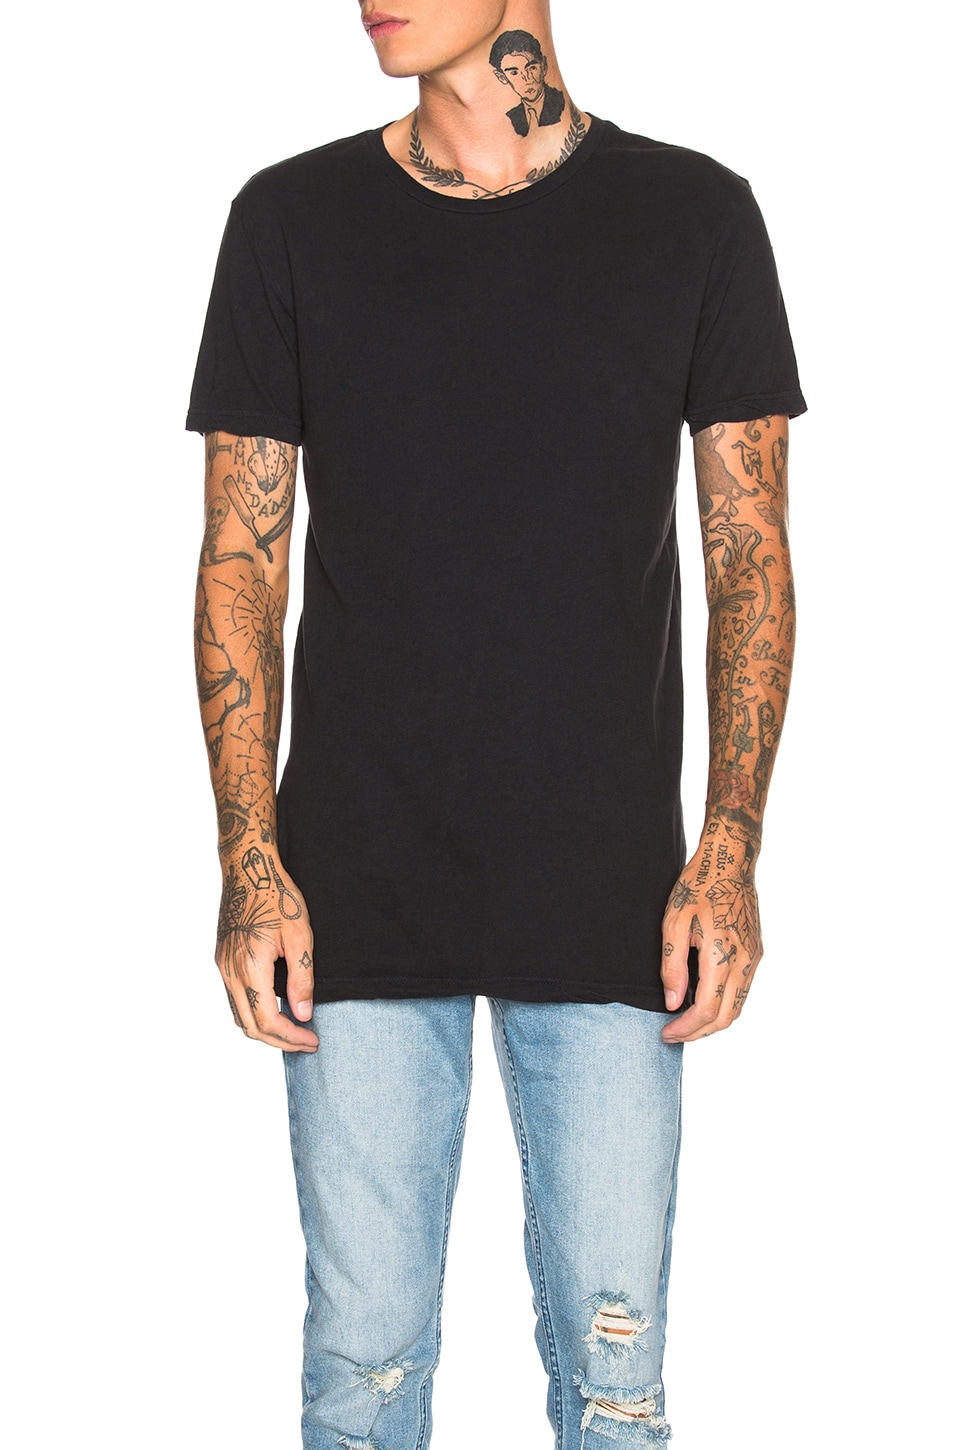 Ksubi Accessories Seeing Lines Tee